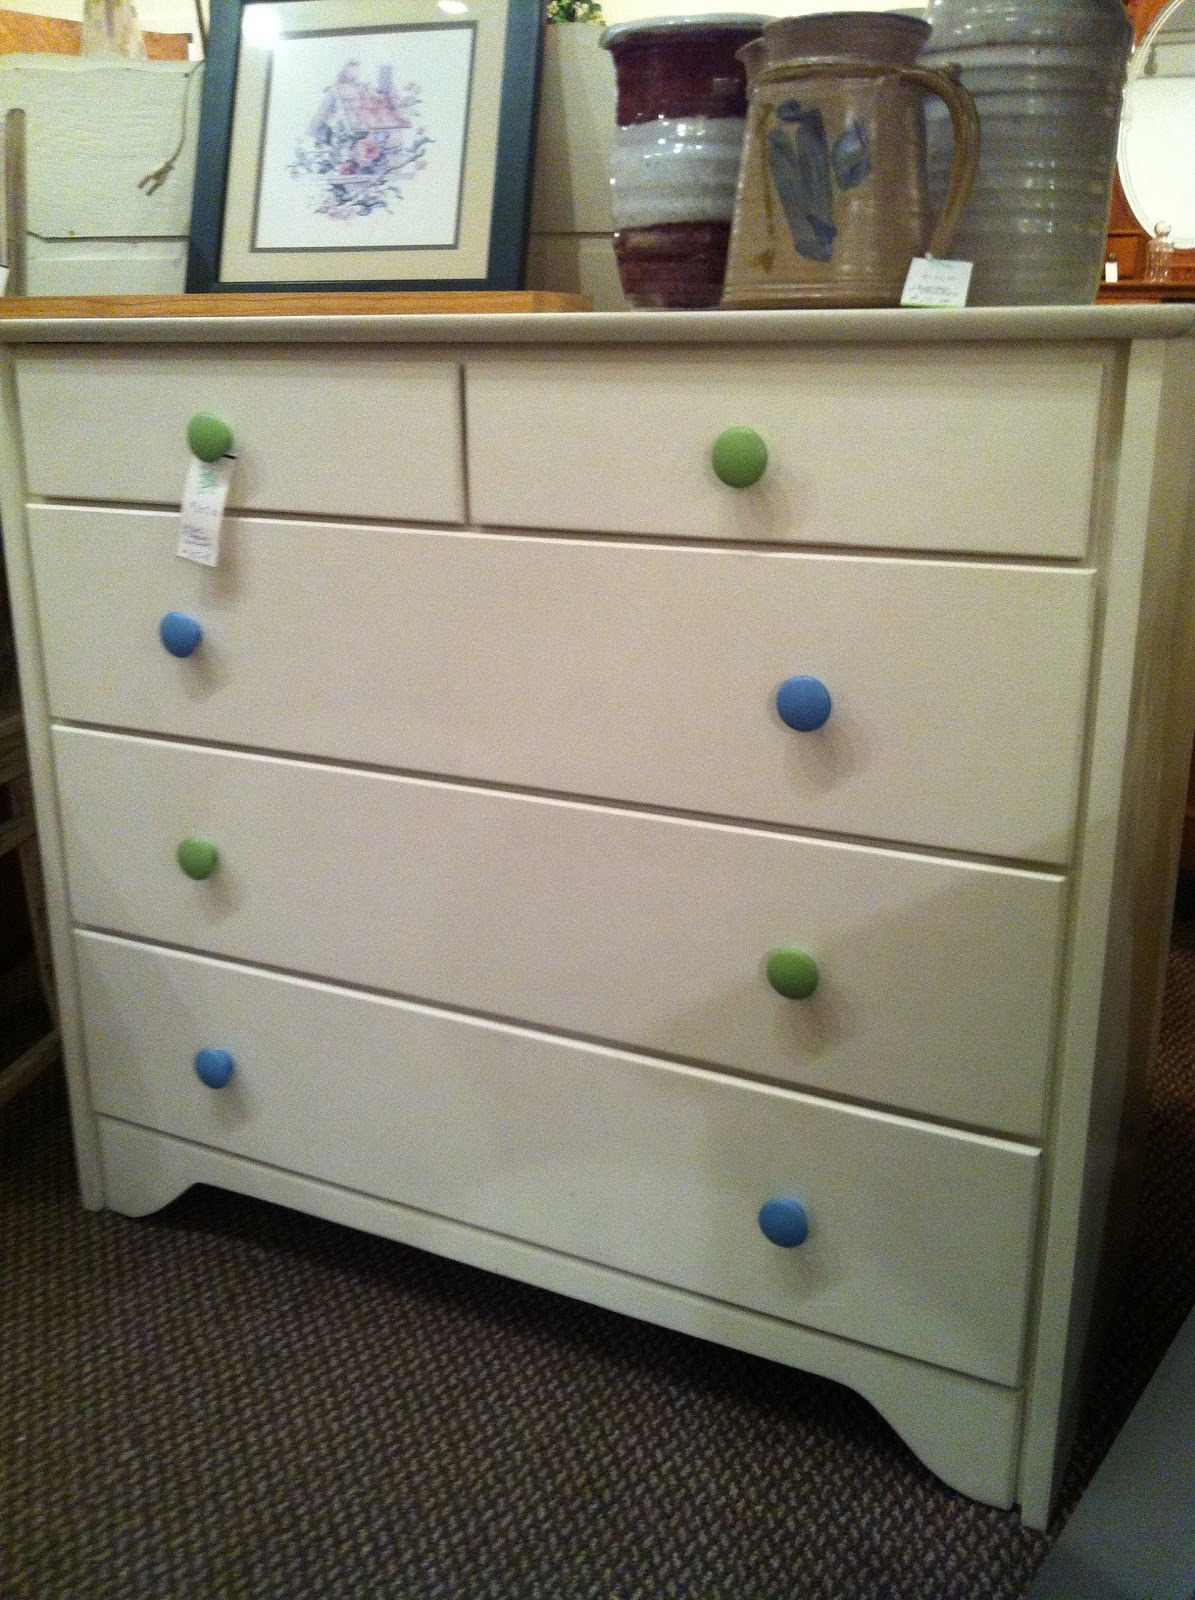 Simple contrasting drawer knobs